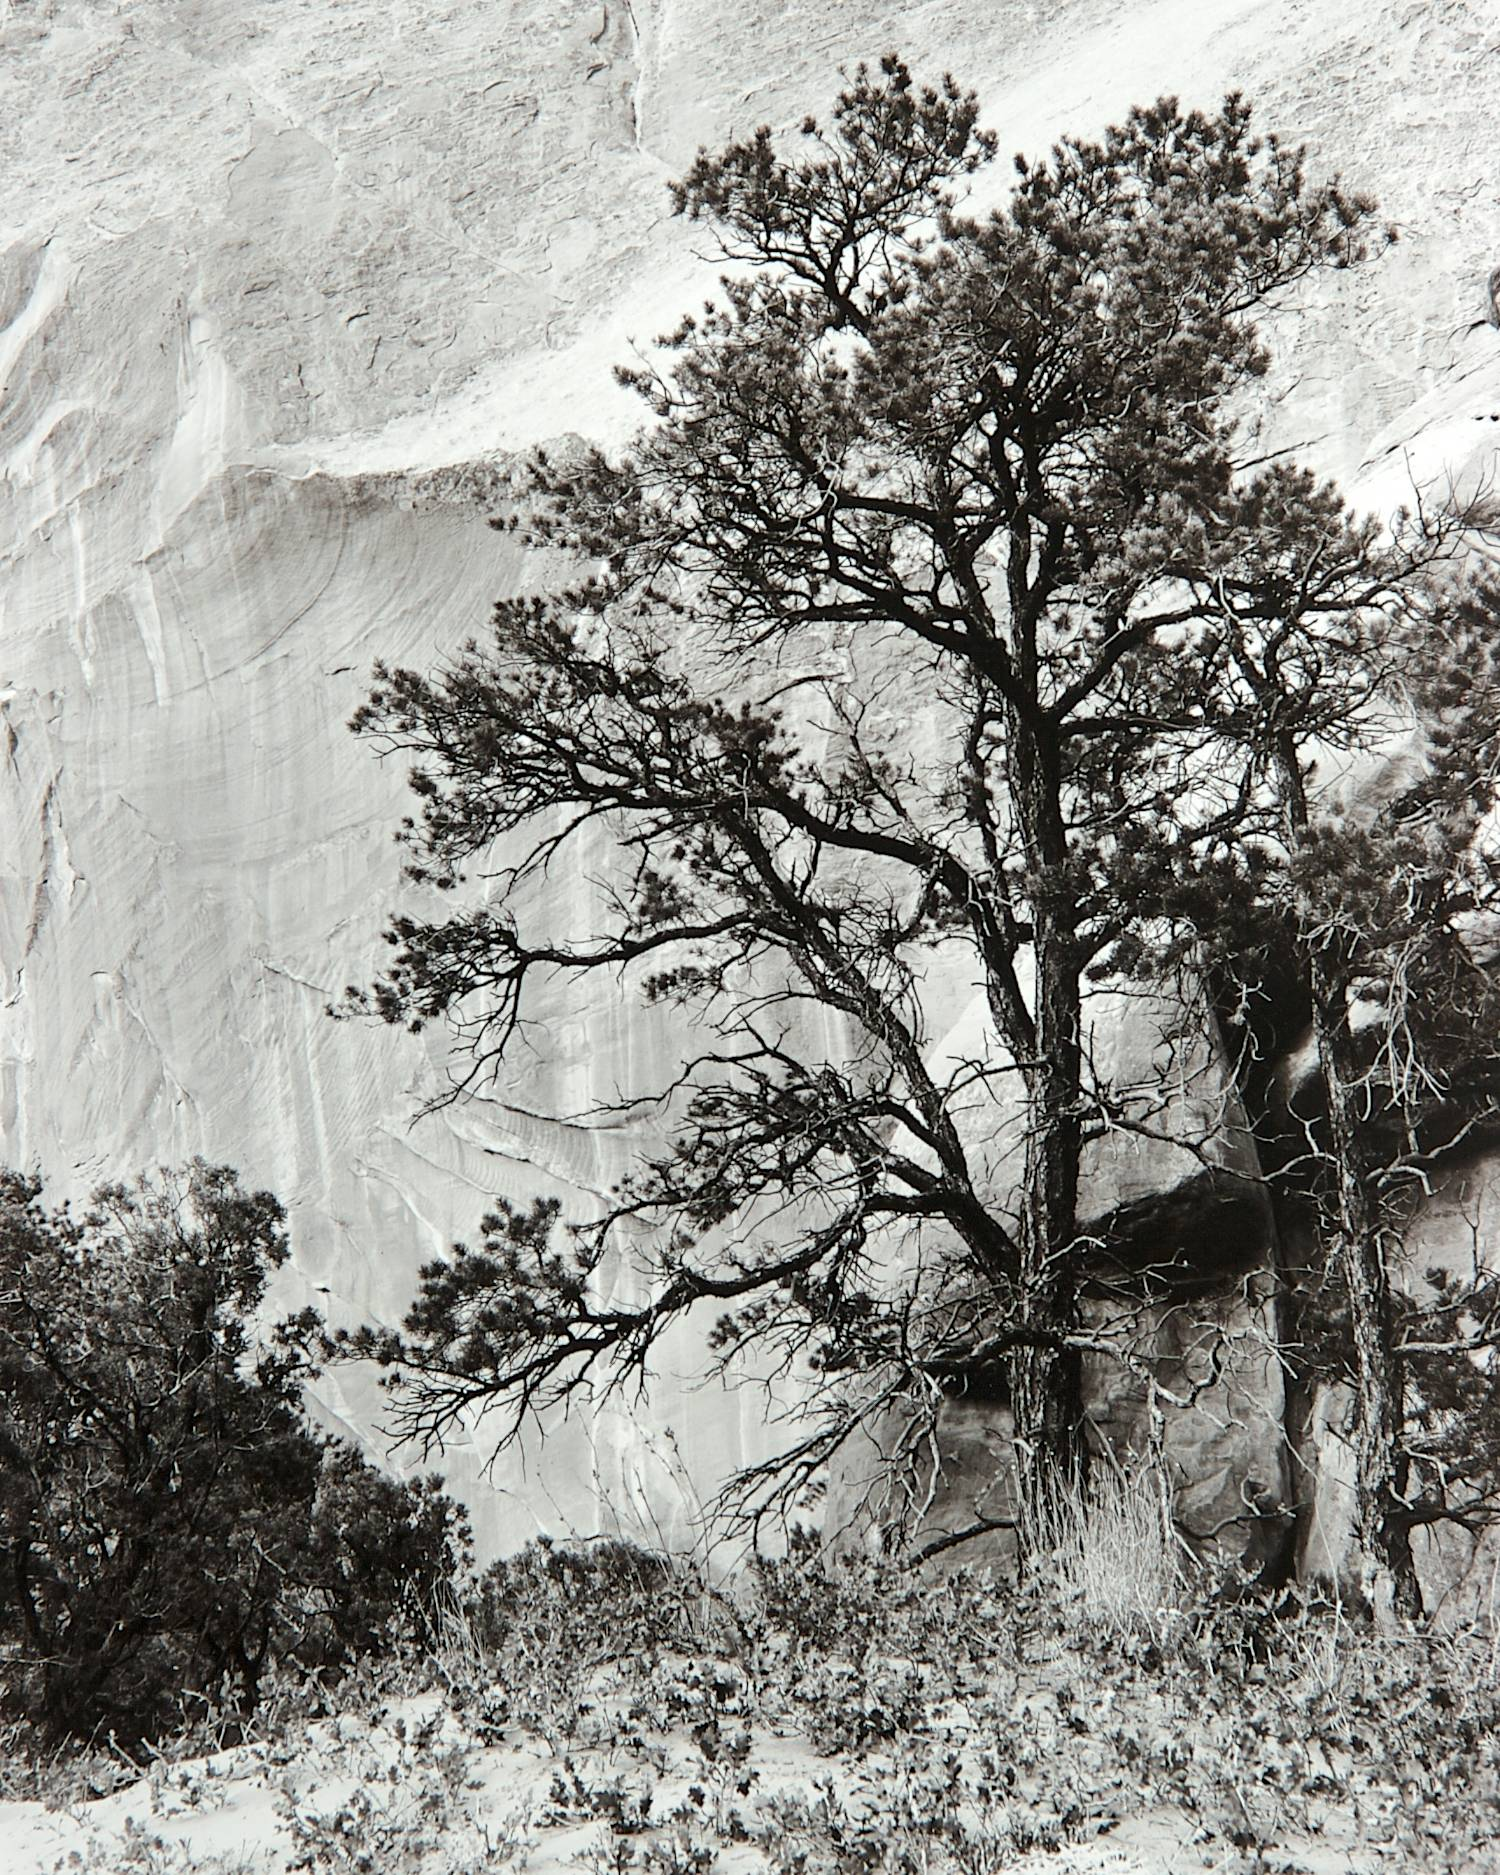 Tree & Rock Face (Arches National Park)